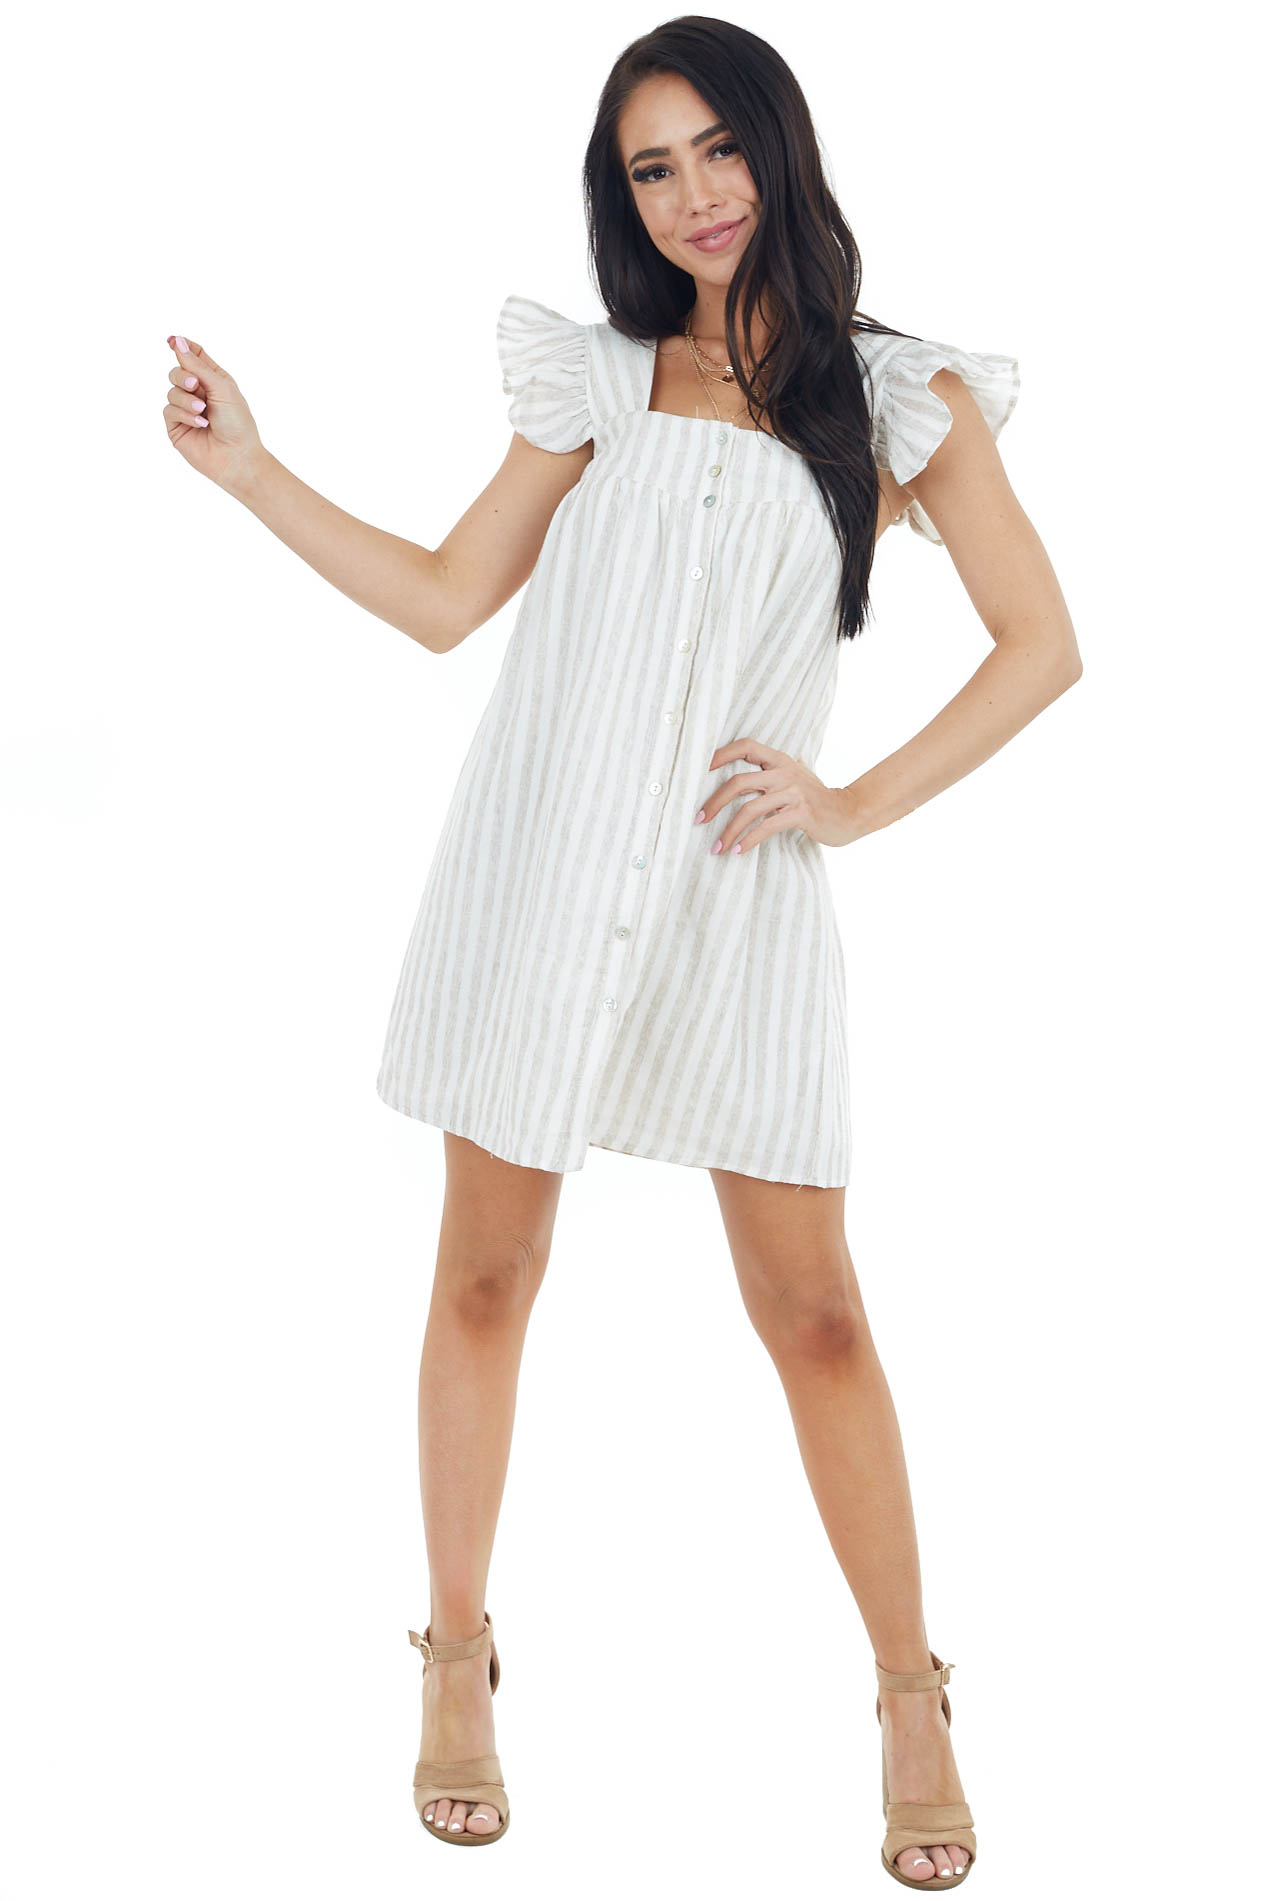 Oatmeal and Ivory Stripe Print Mini Dress with Ruffle Straps